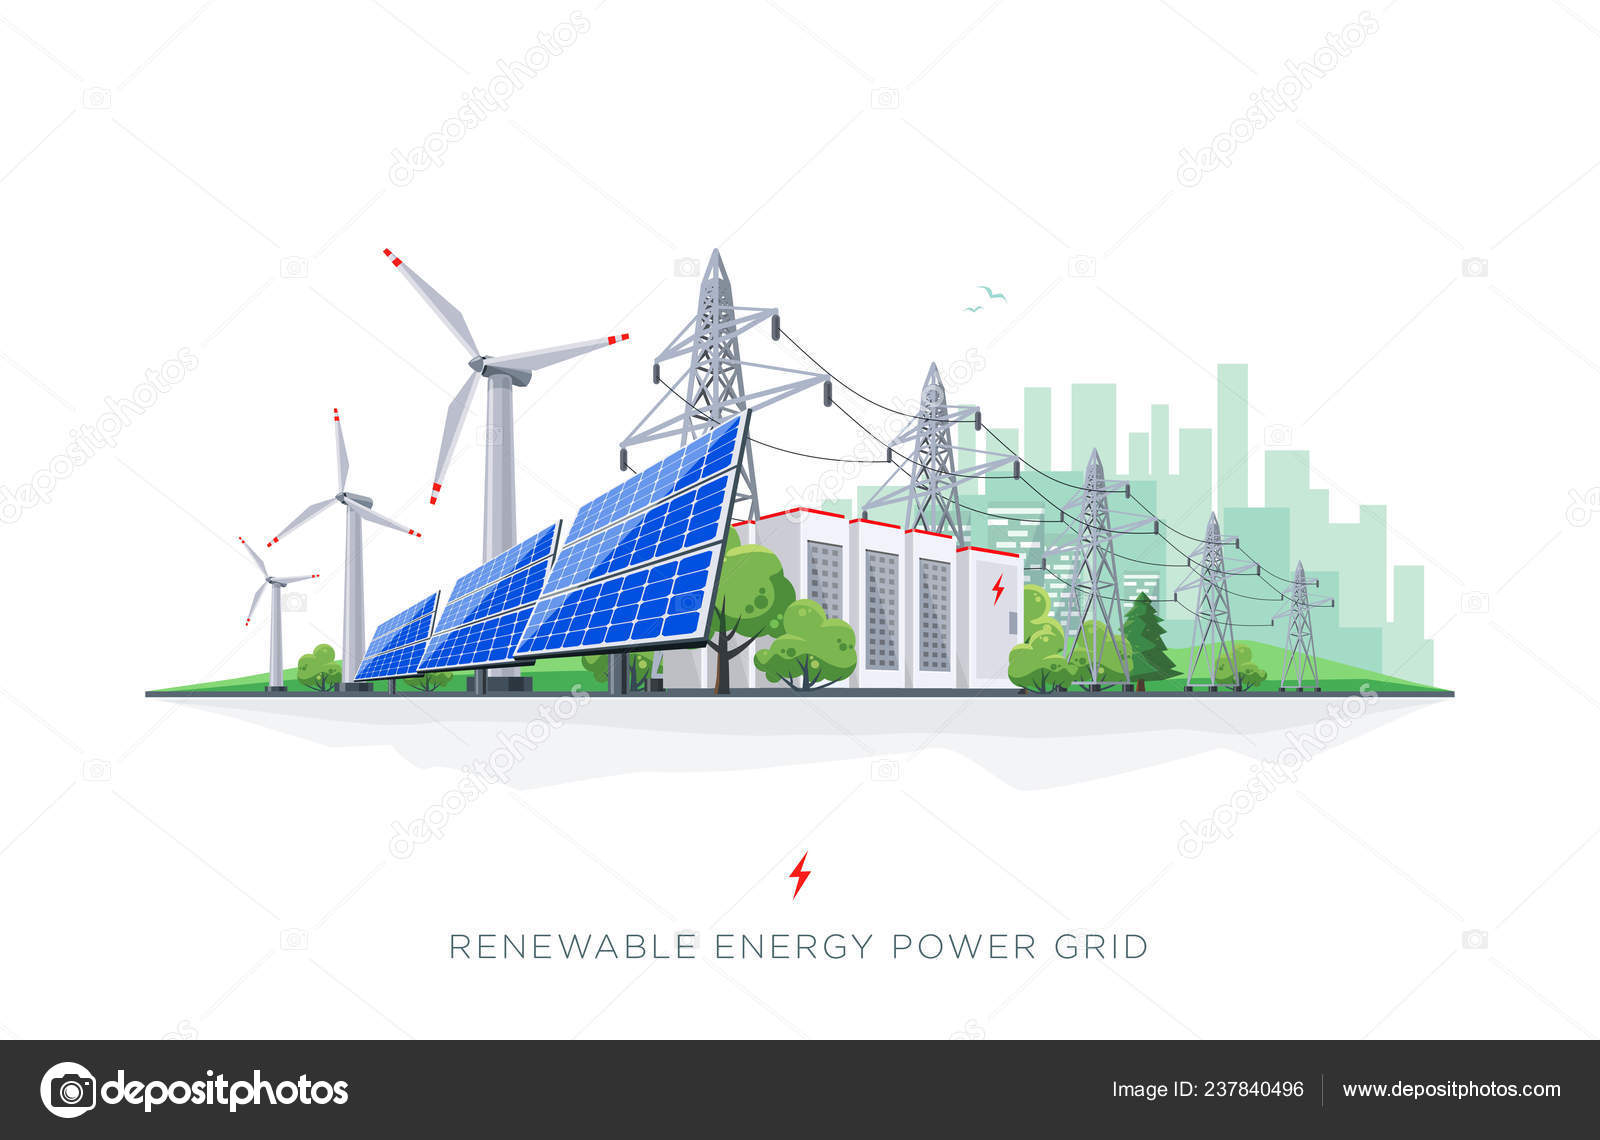 Books Design Of Smart Power Grid Renewable Energy Systems Engineering Engineering Professional Technical